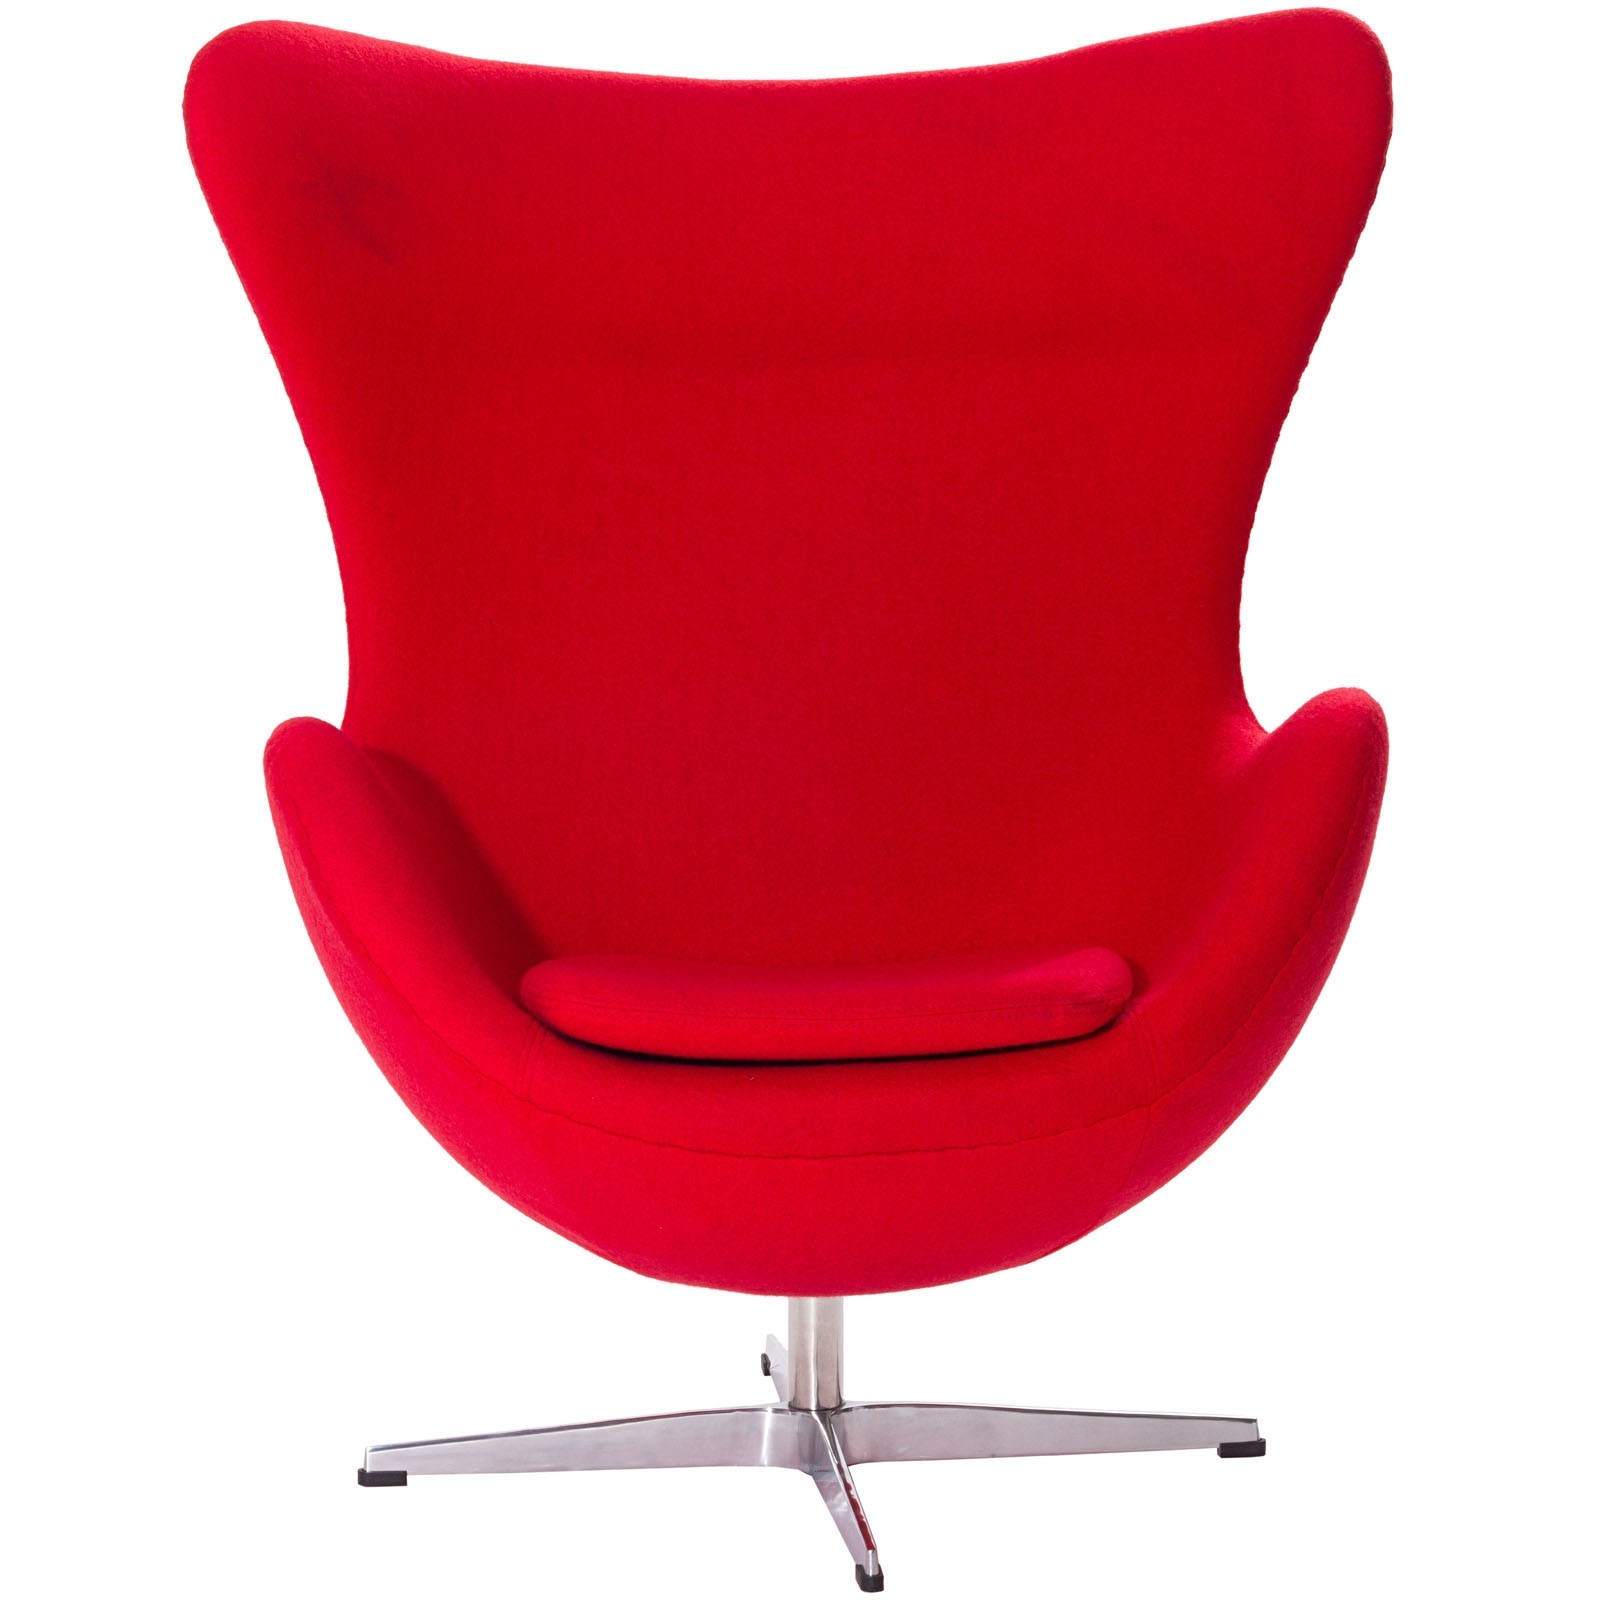 Arne jacobsen egg chair wool for Egg chair jacobsen